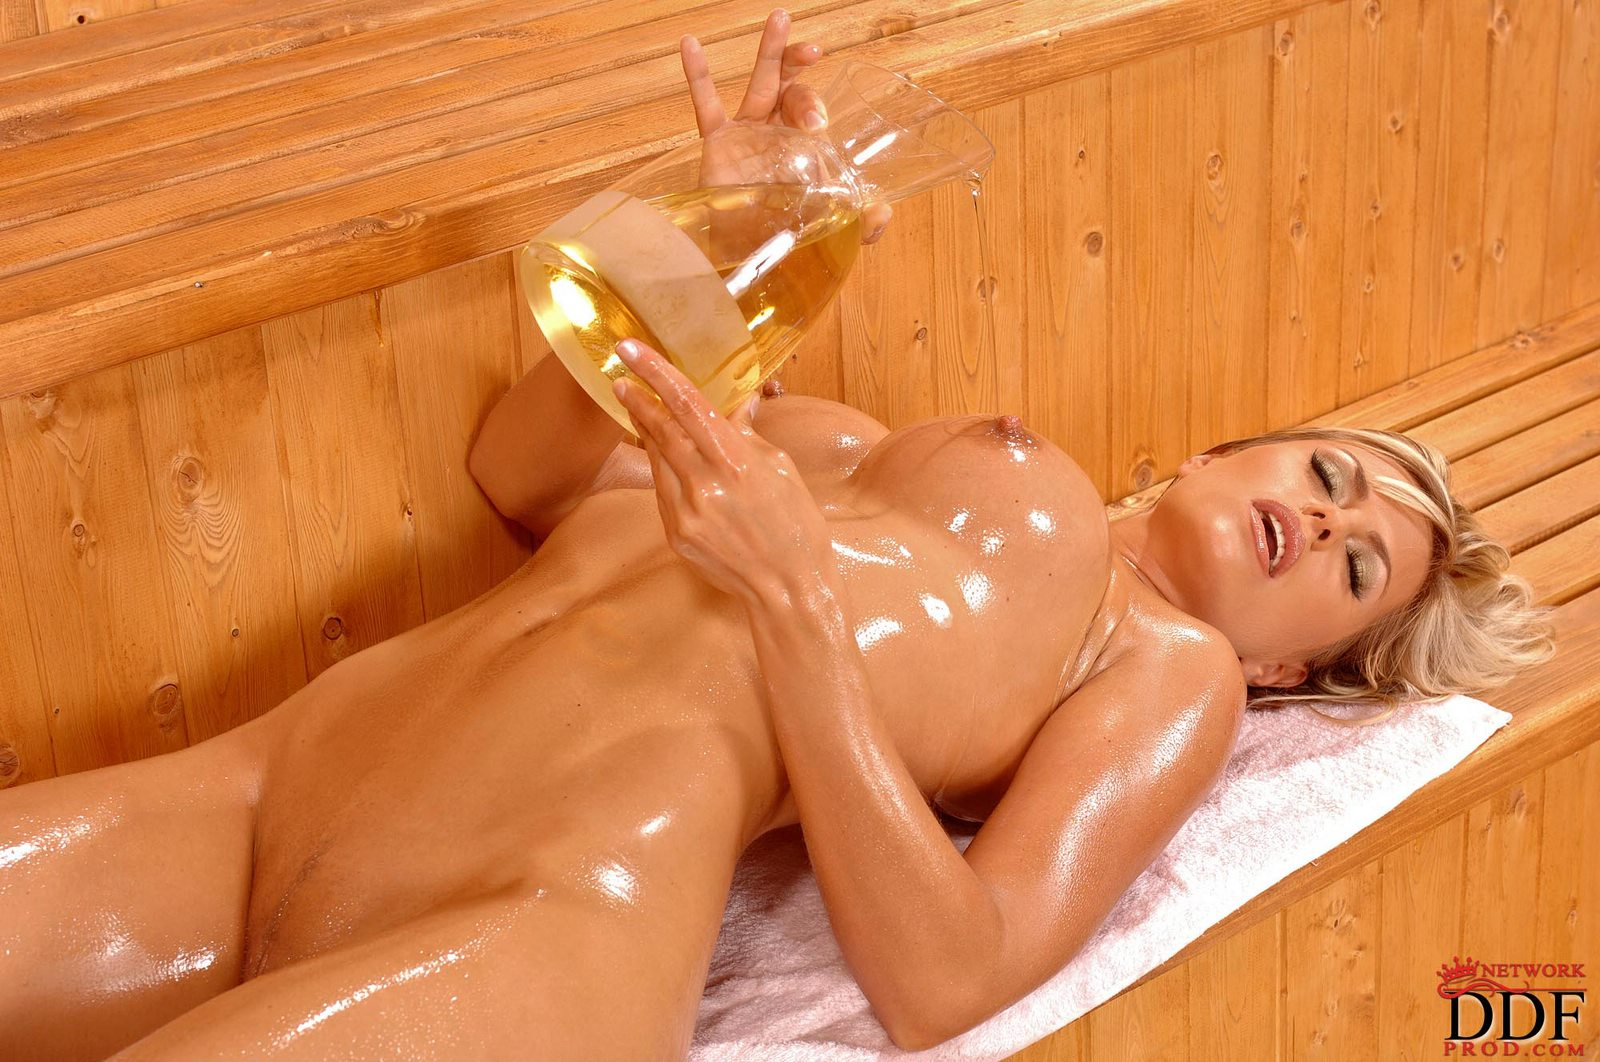 from Cain sexy and oily nude ladies